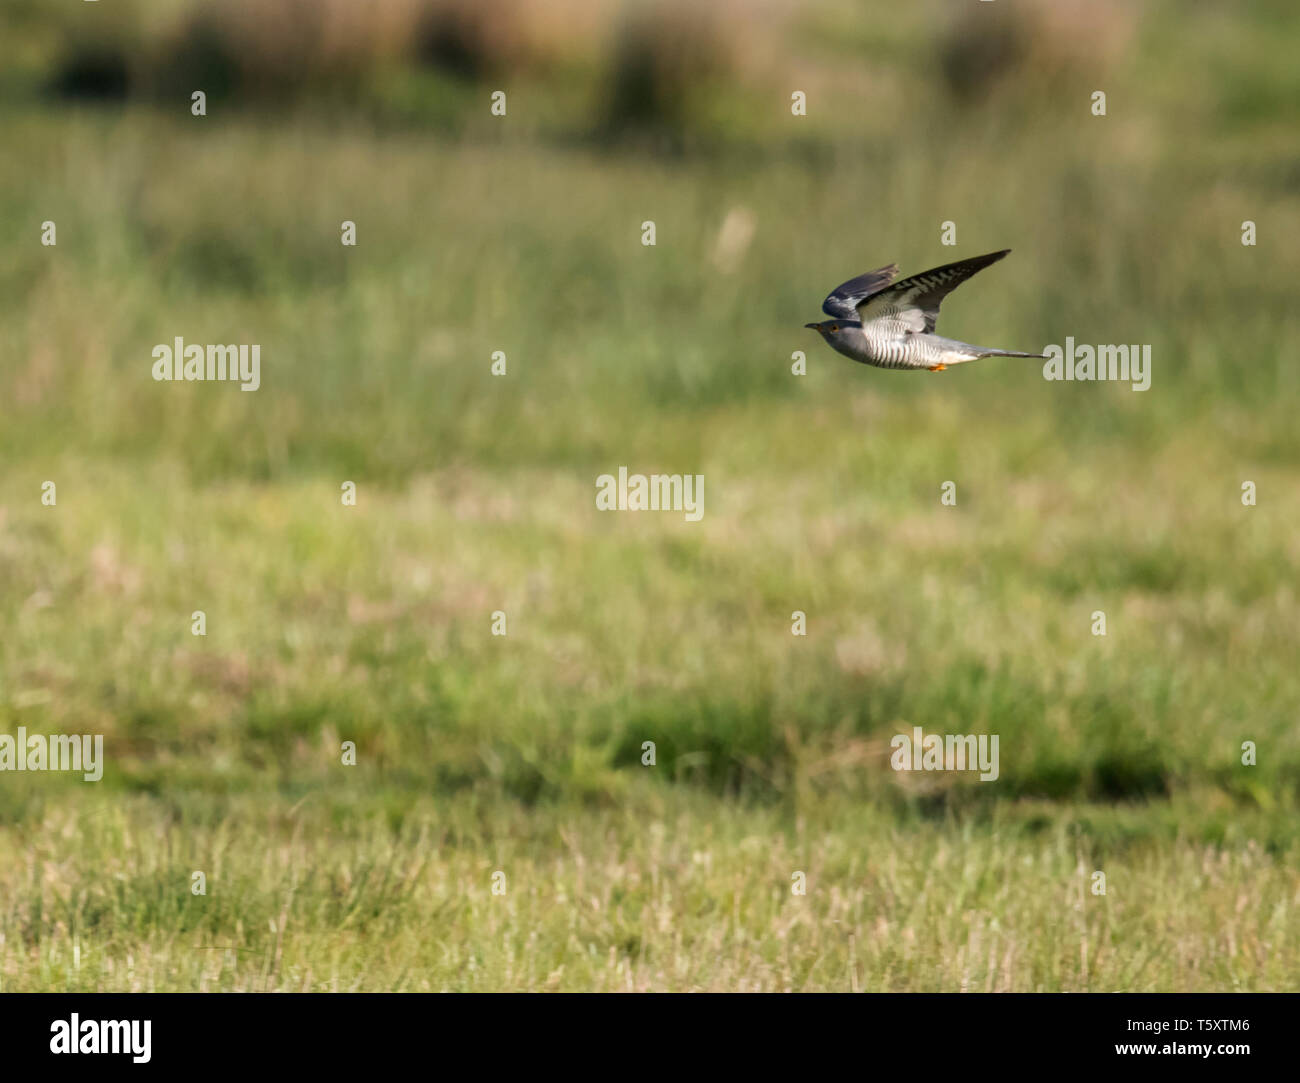 A Cuckoo (Cuculus canorus) in flight low of Oxfordshire grasslands - Stock Image